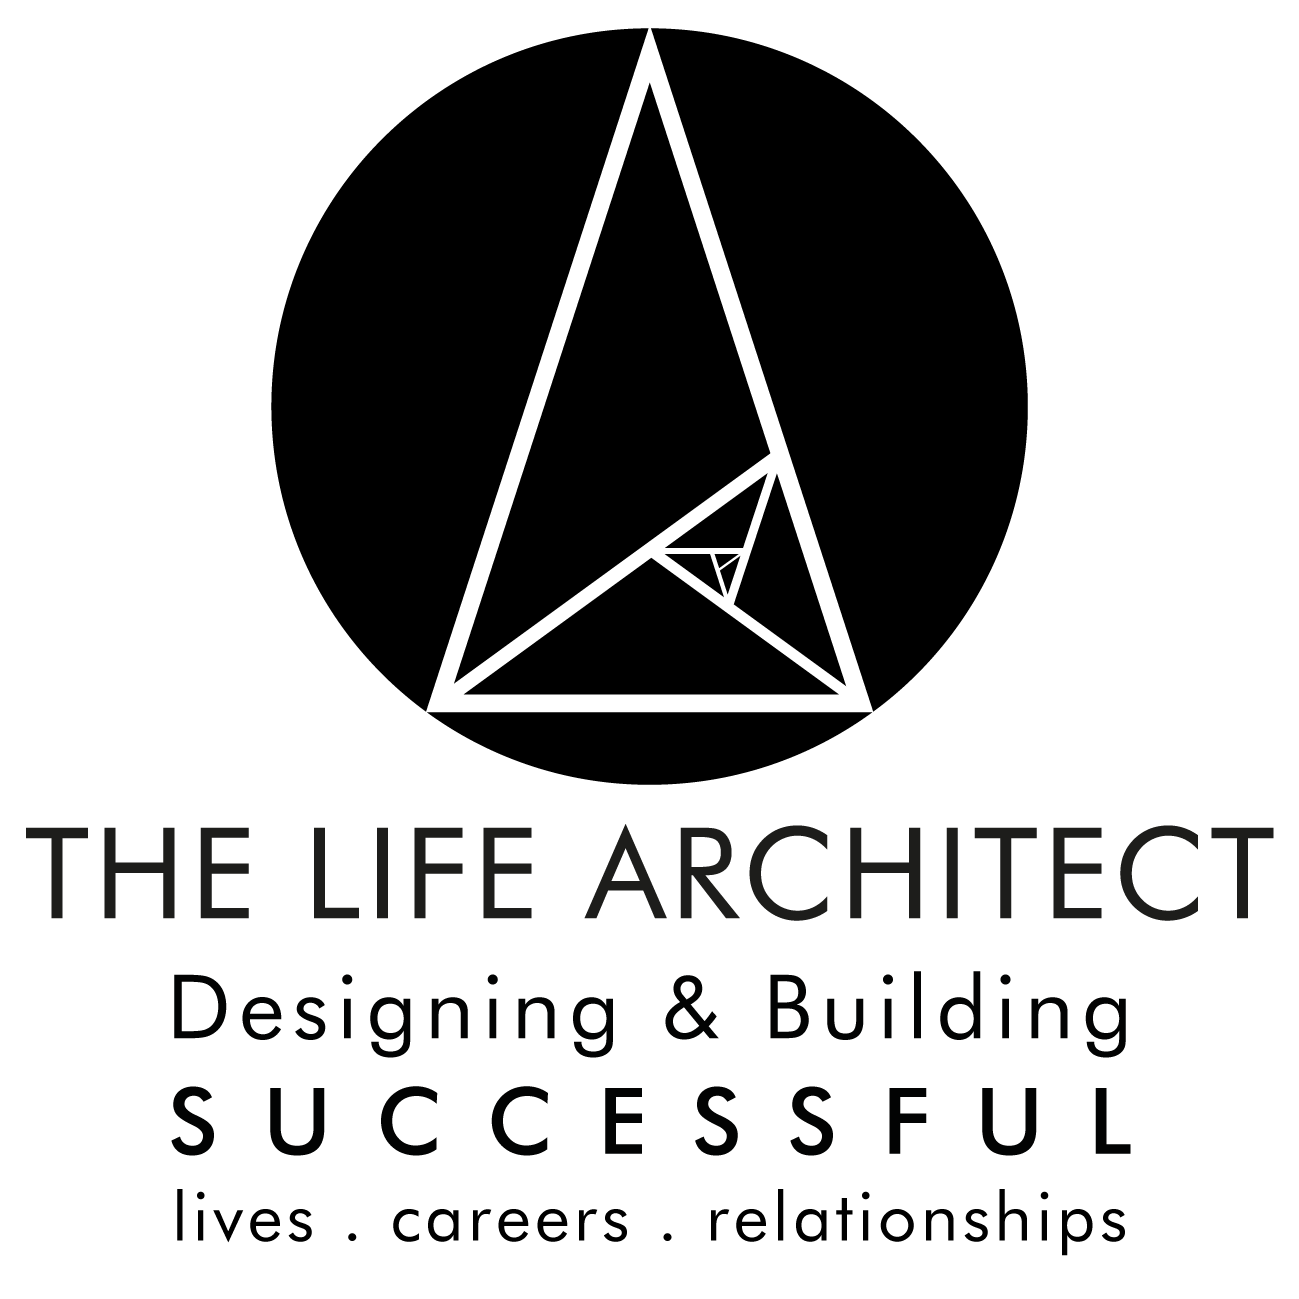 THE LIFE ARCHITECT